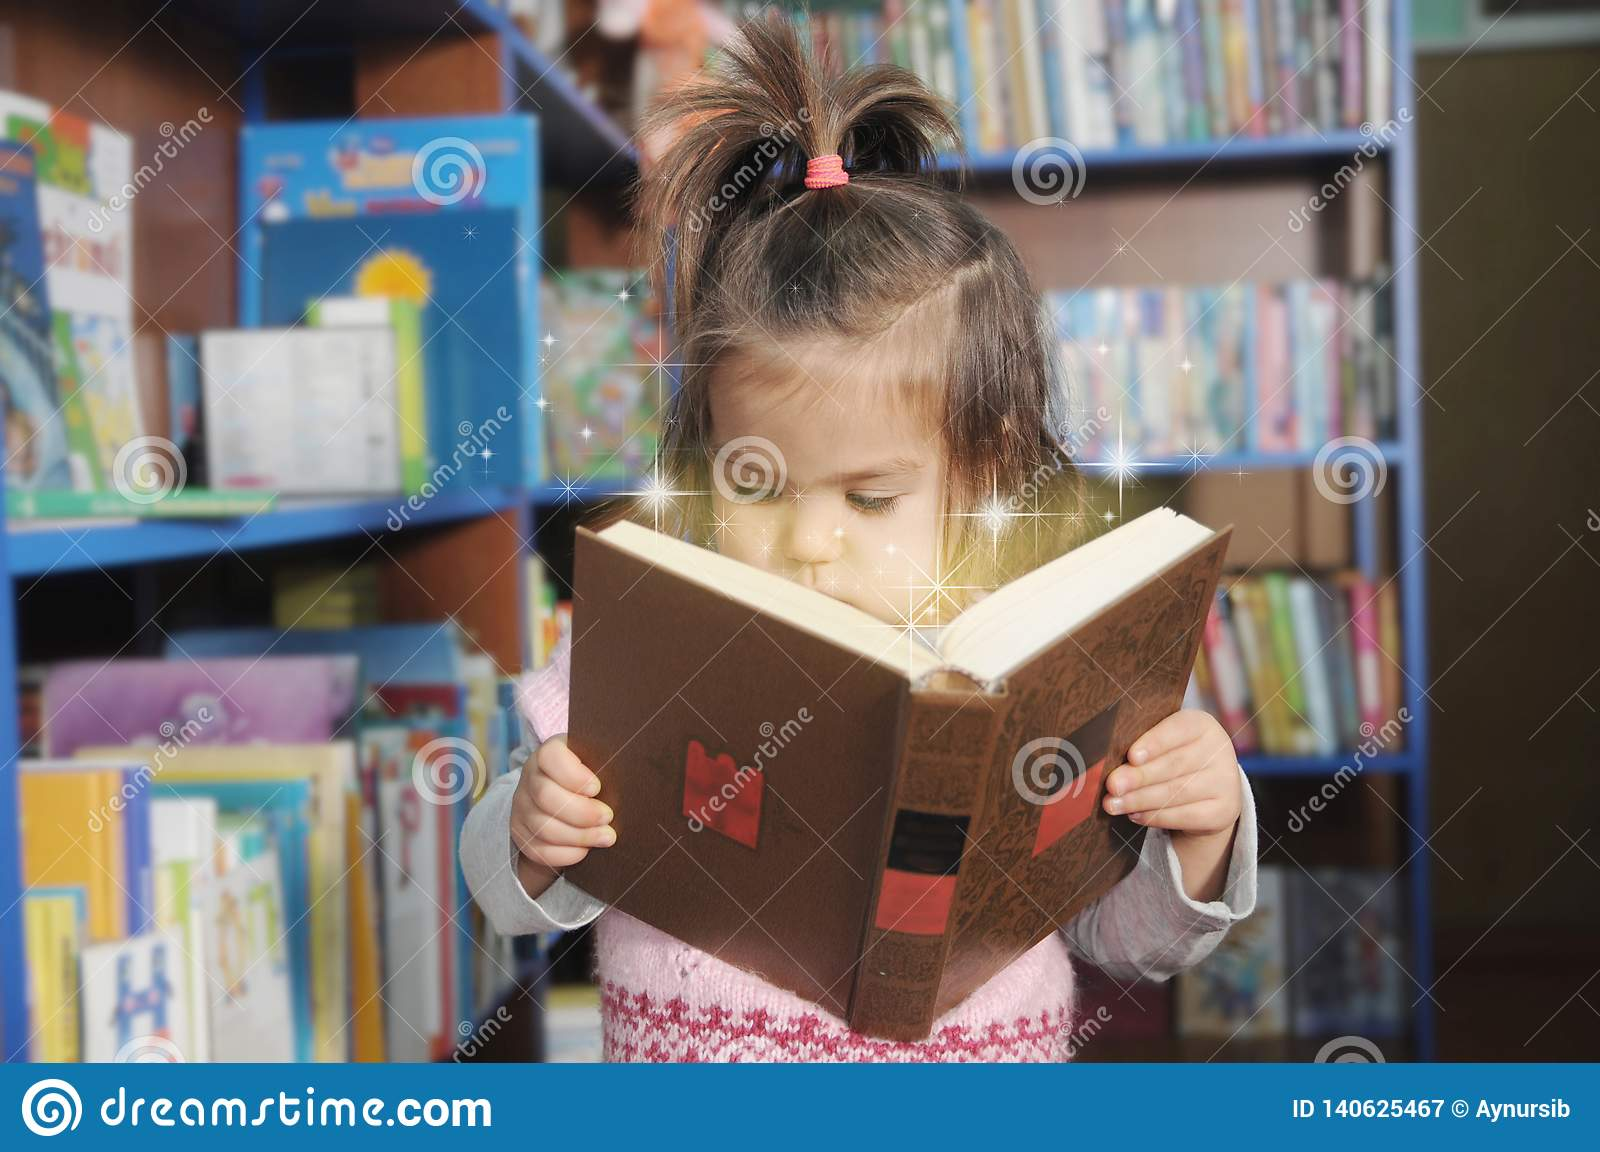 Child Reading Magic Book  Little Girl In Laibrary Looking